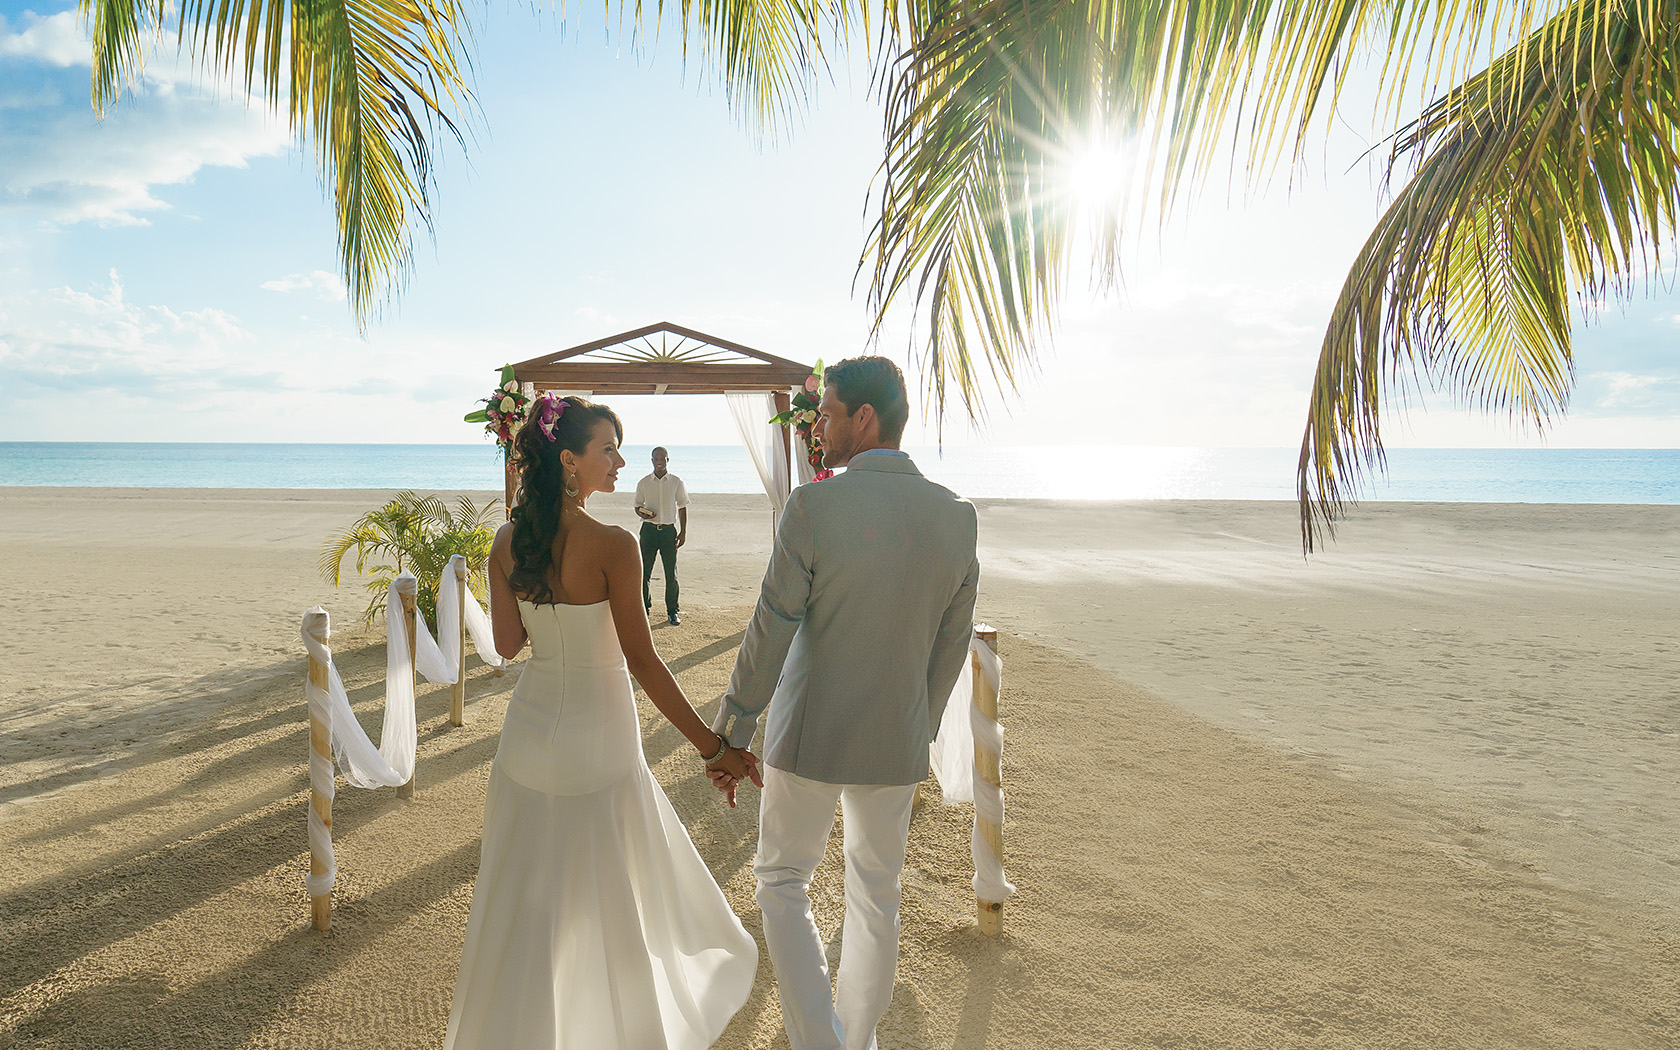 http://be478d95e8aa404656c1-d983ce57e4c84901daded0f67d5a004f.r11.cf1.rackcdn.com/couplesresorts/media/WeddingPackage-1680x1050_0003_SunsetWedding-5767ff7cb852a.jpg